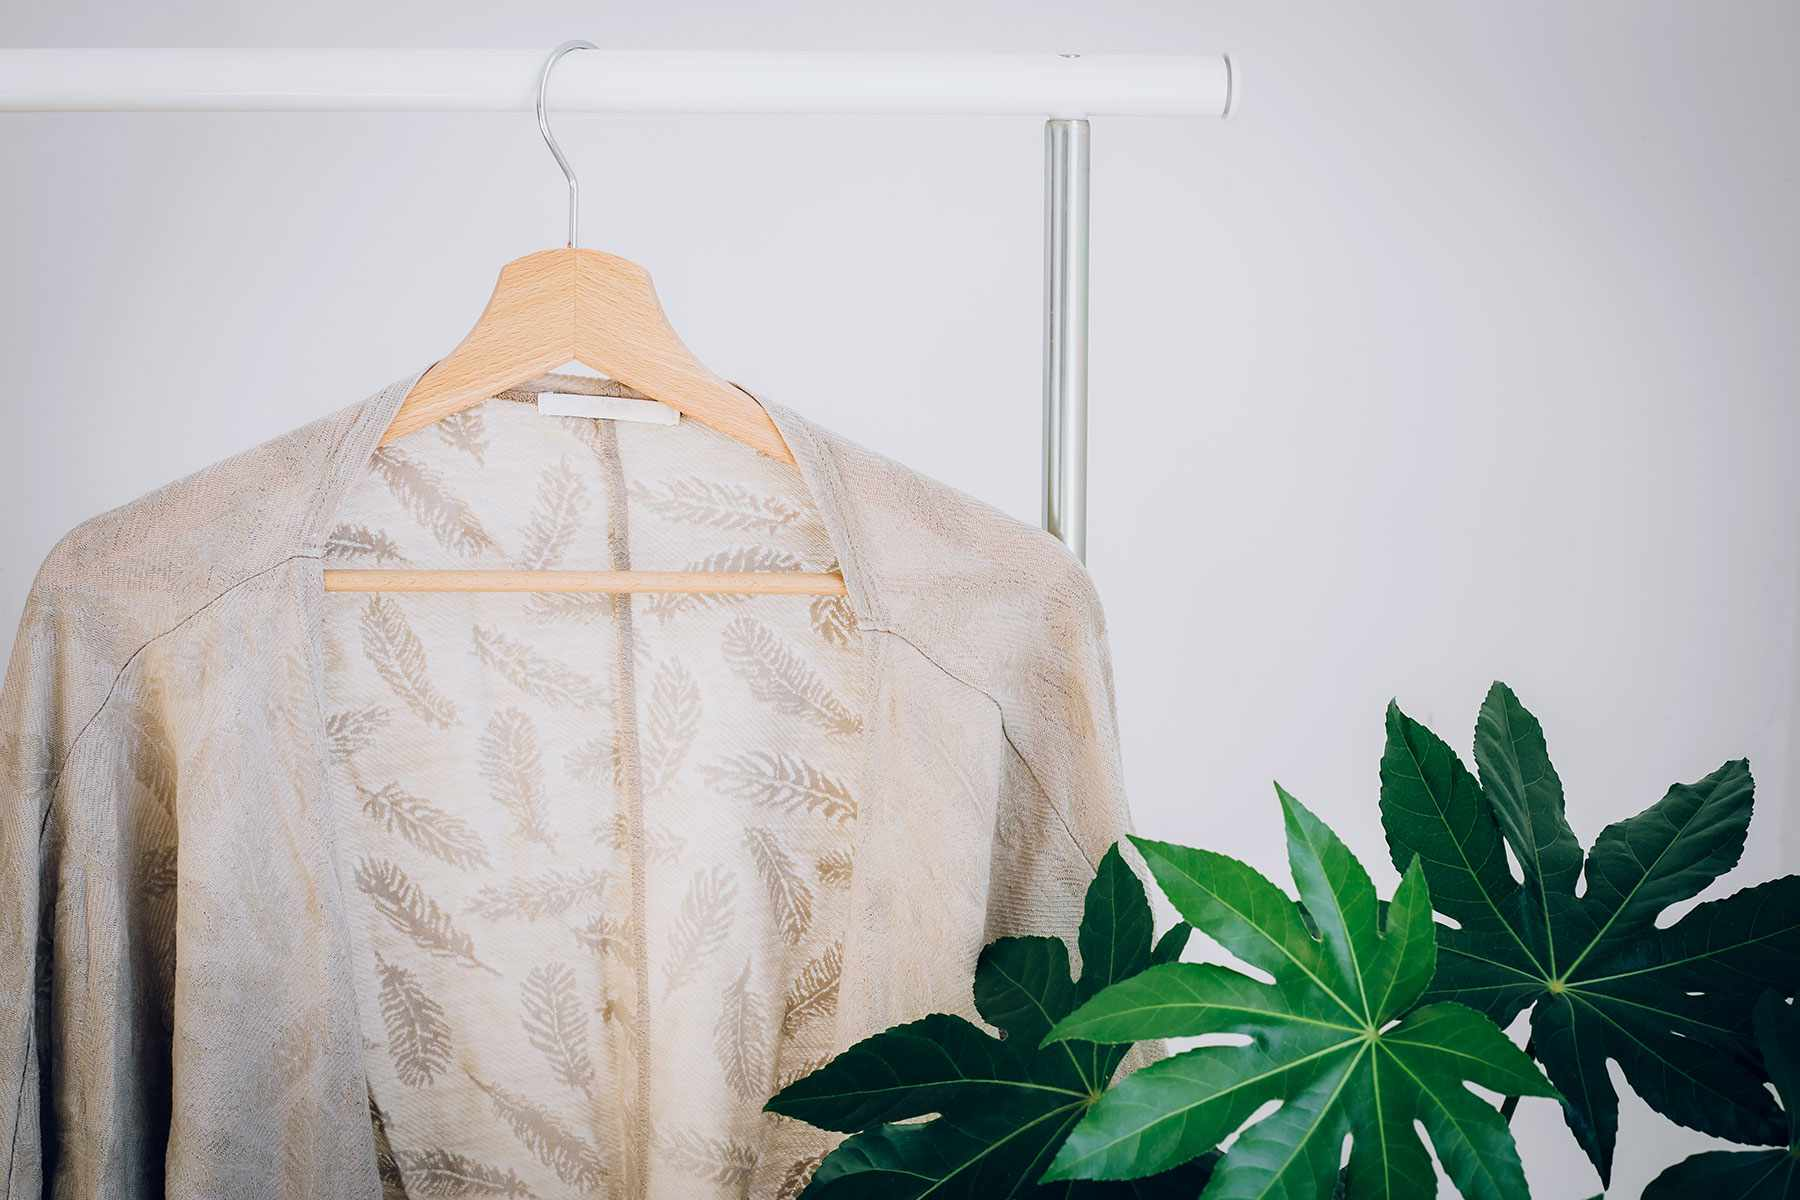 hang the affected garment in a well-ventilated area